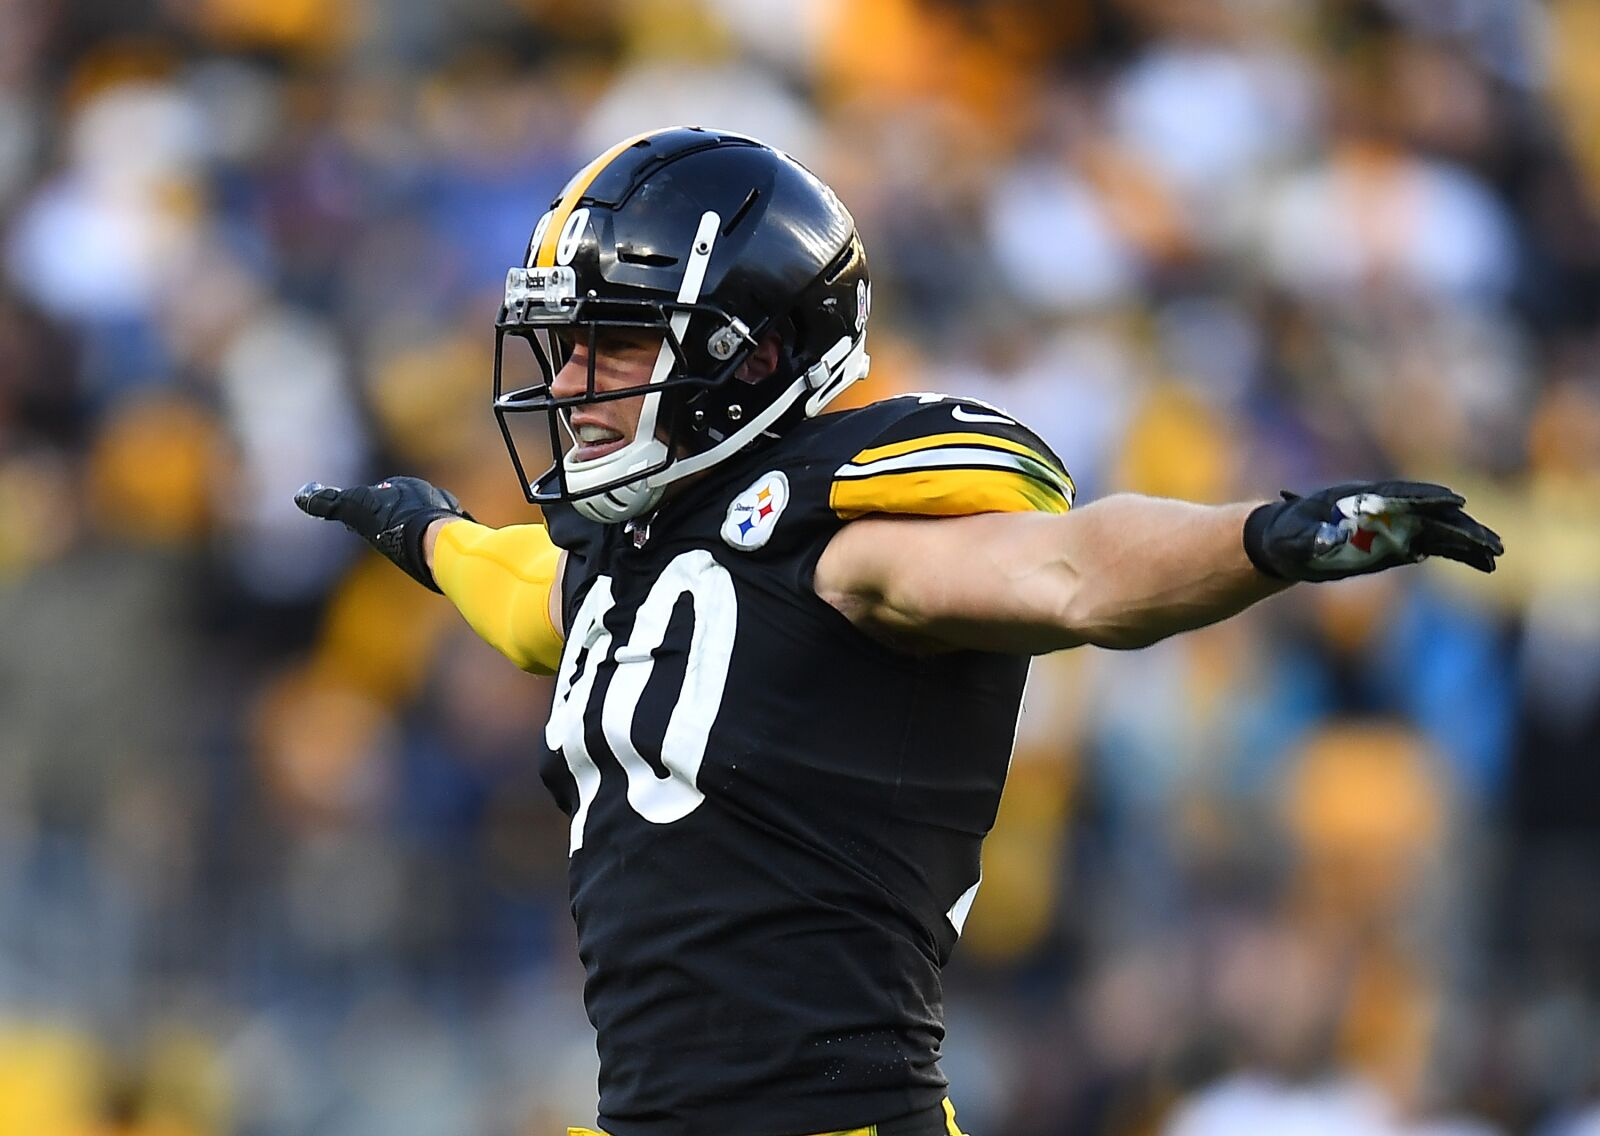 Recapping the Steelers victory over the Indianapolis Colts